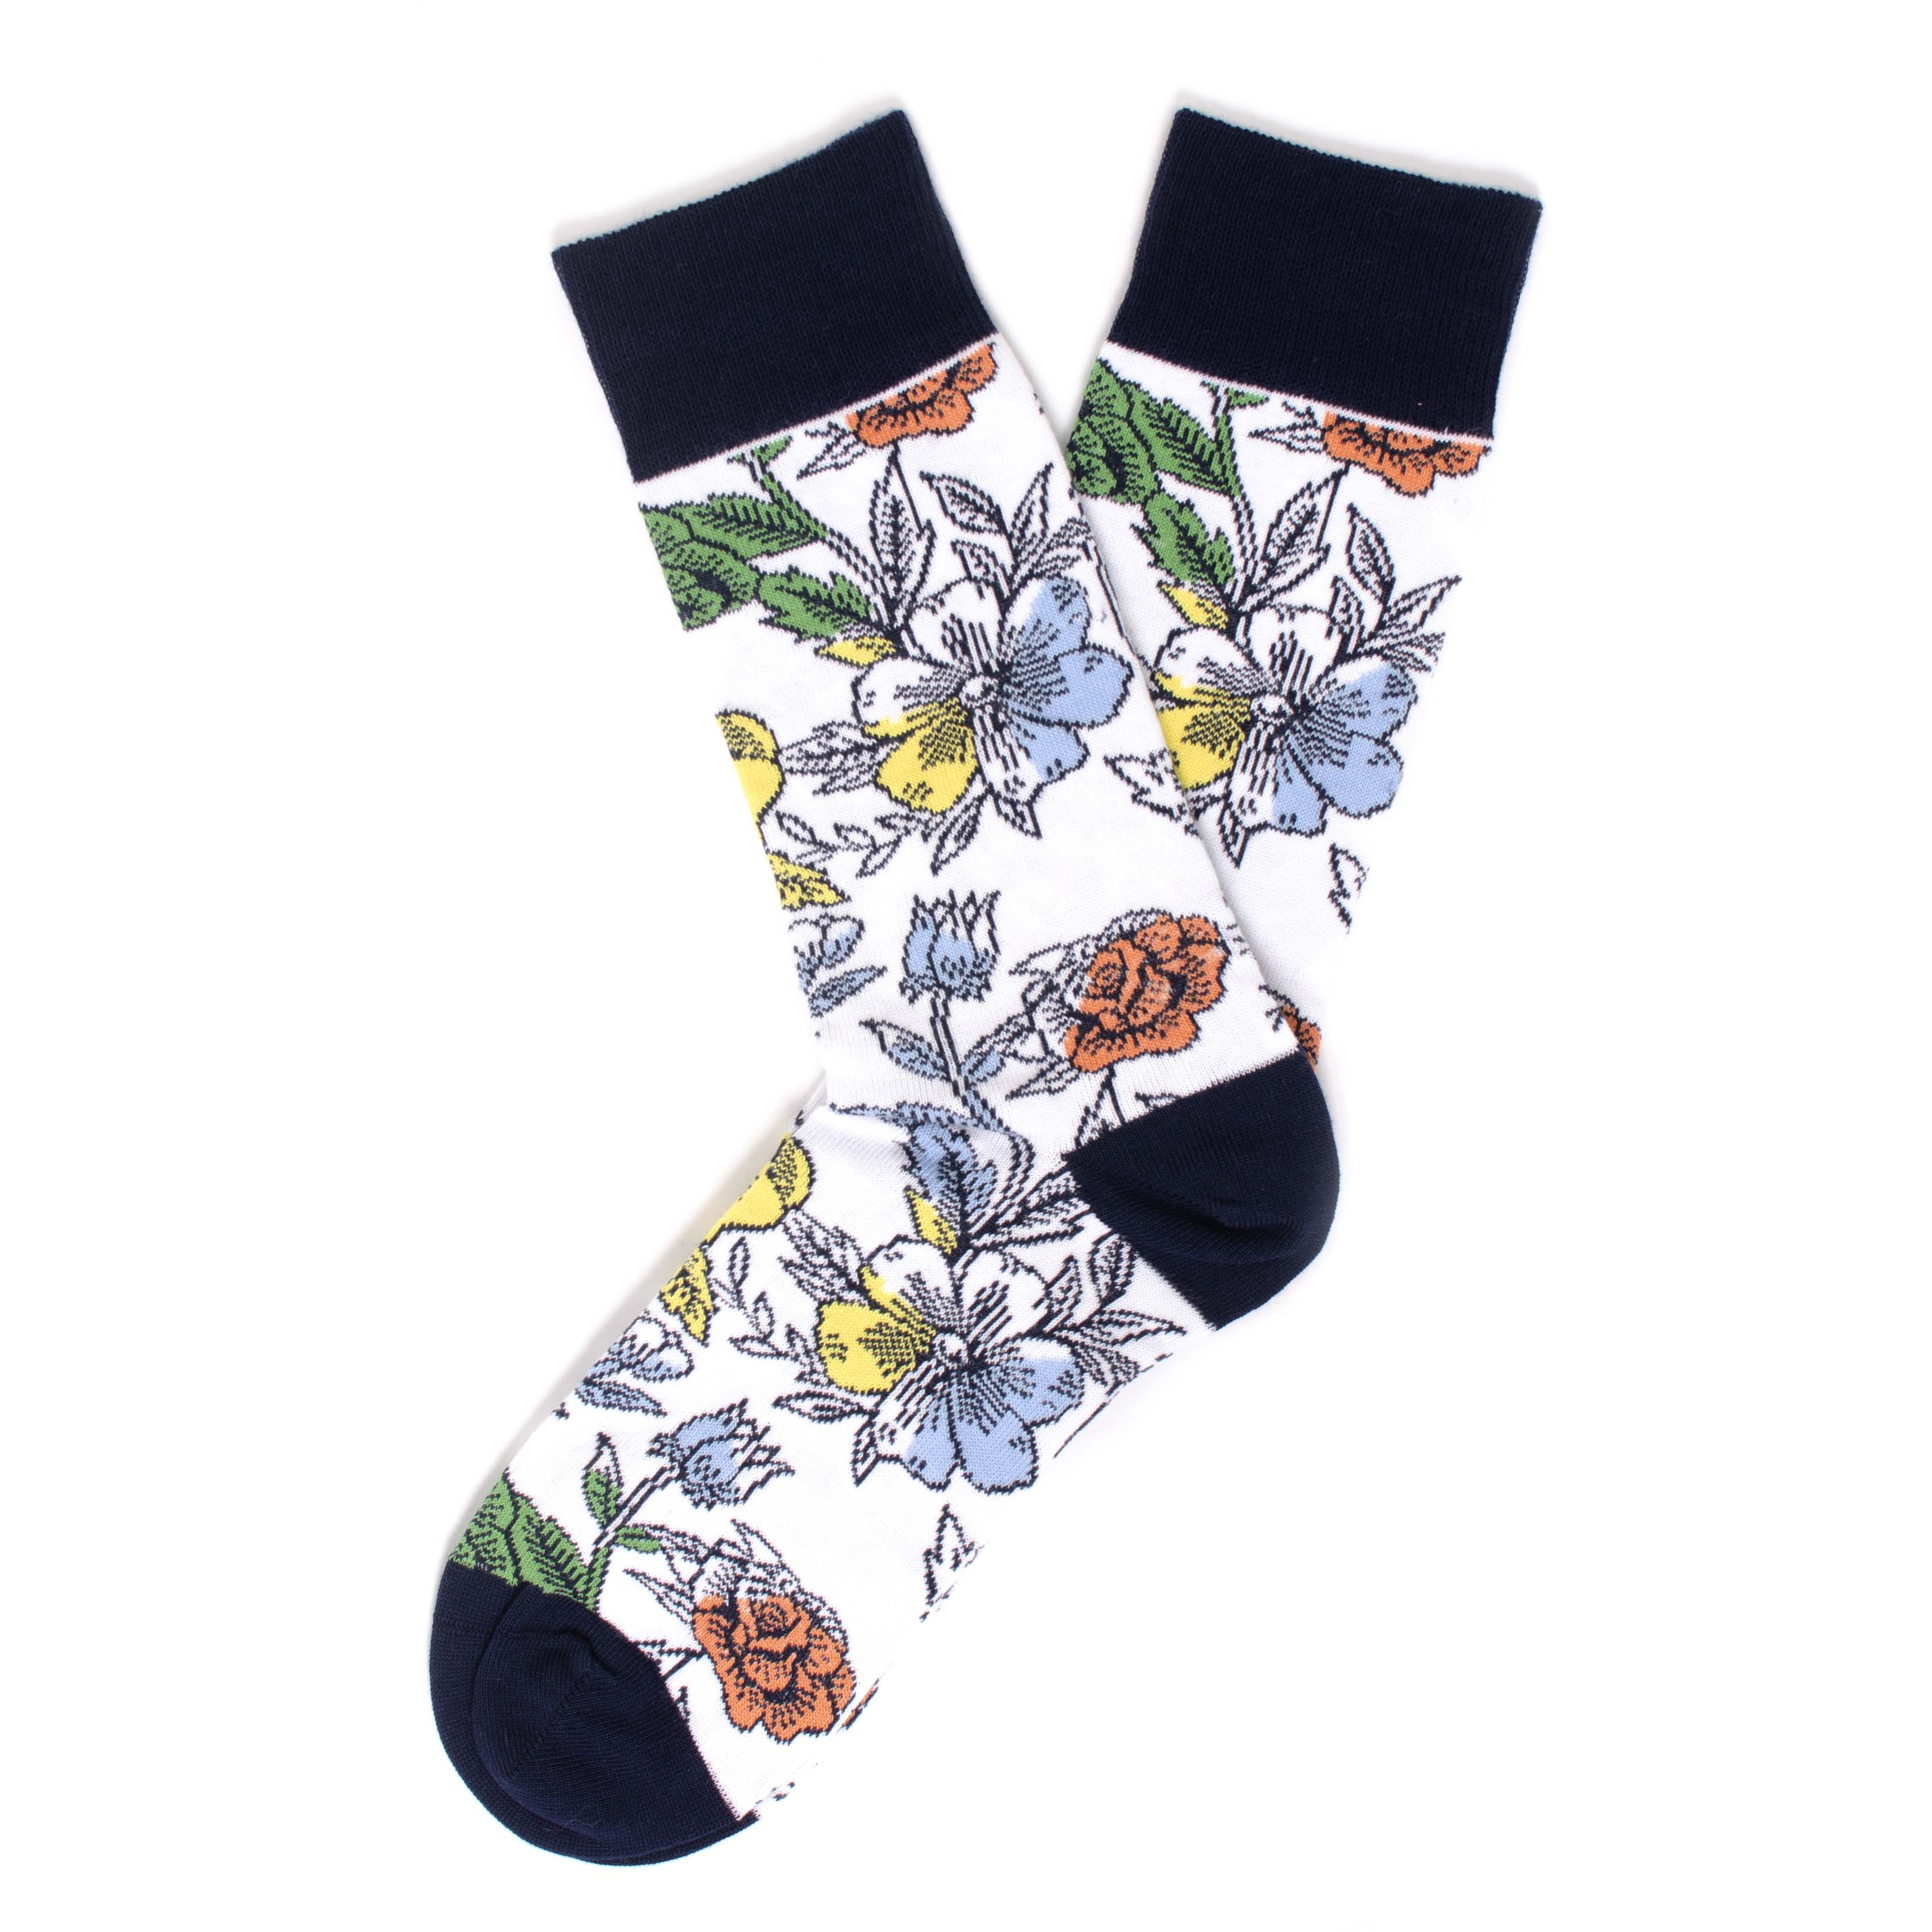 Socks with multicolour flower dessin